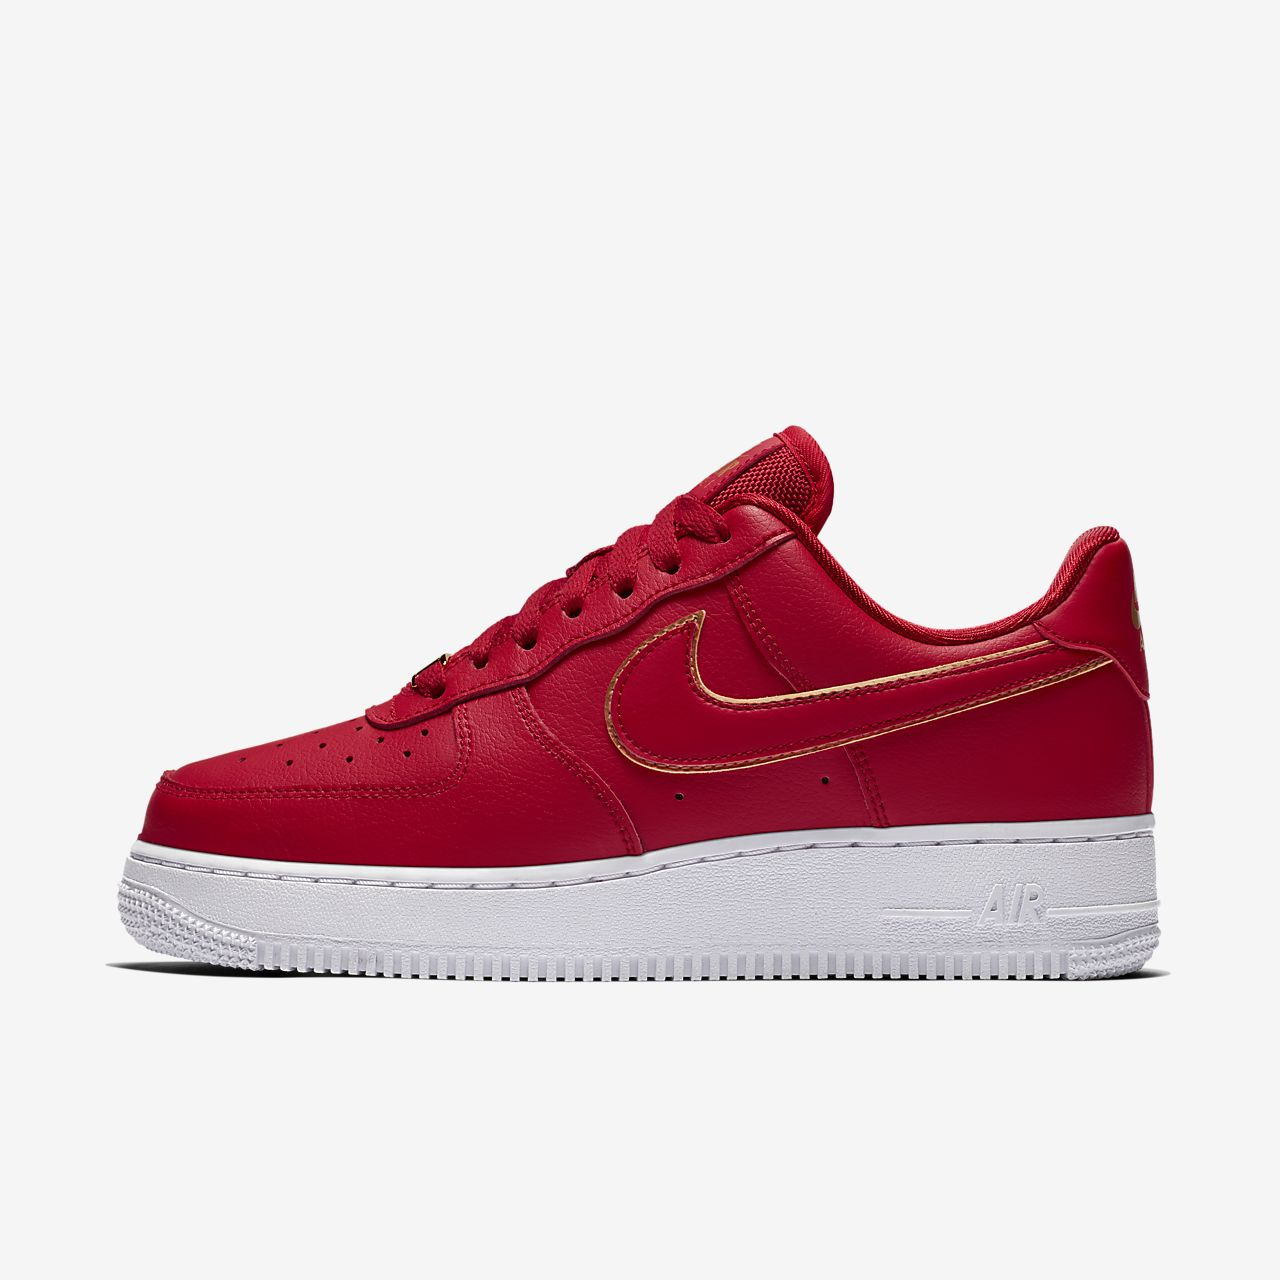 Nike Air Force 1 '07 Low Essential | JD Sports